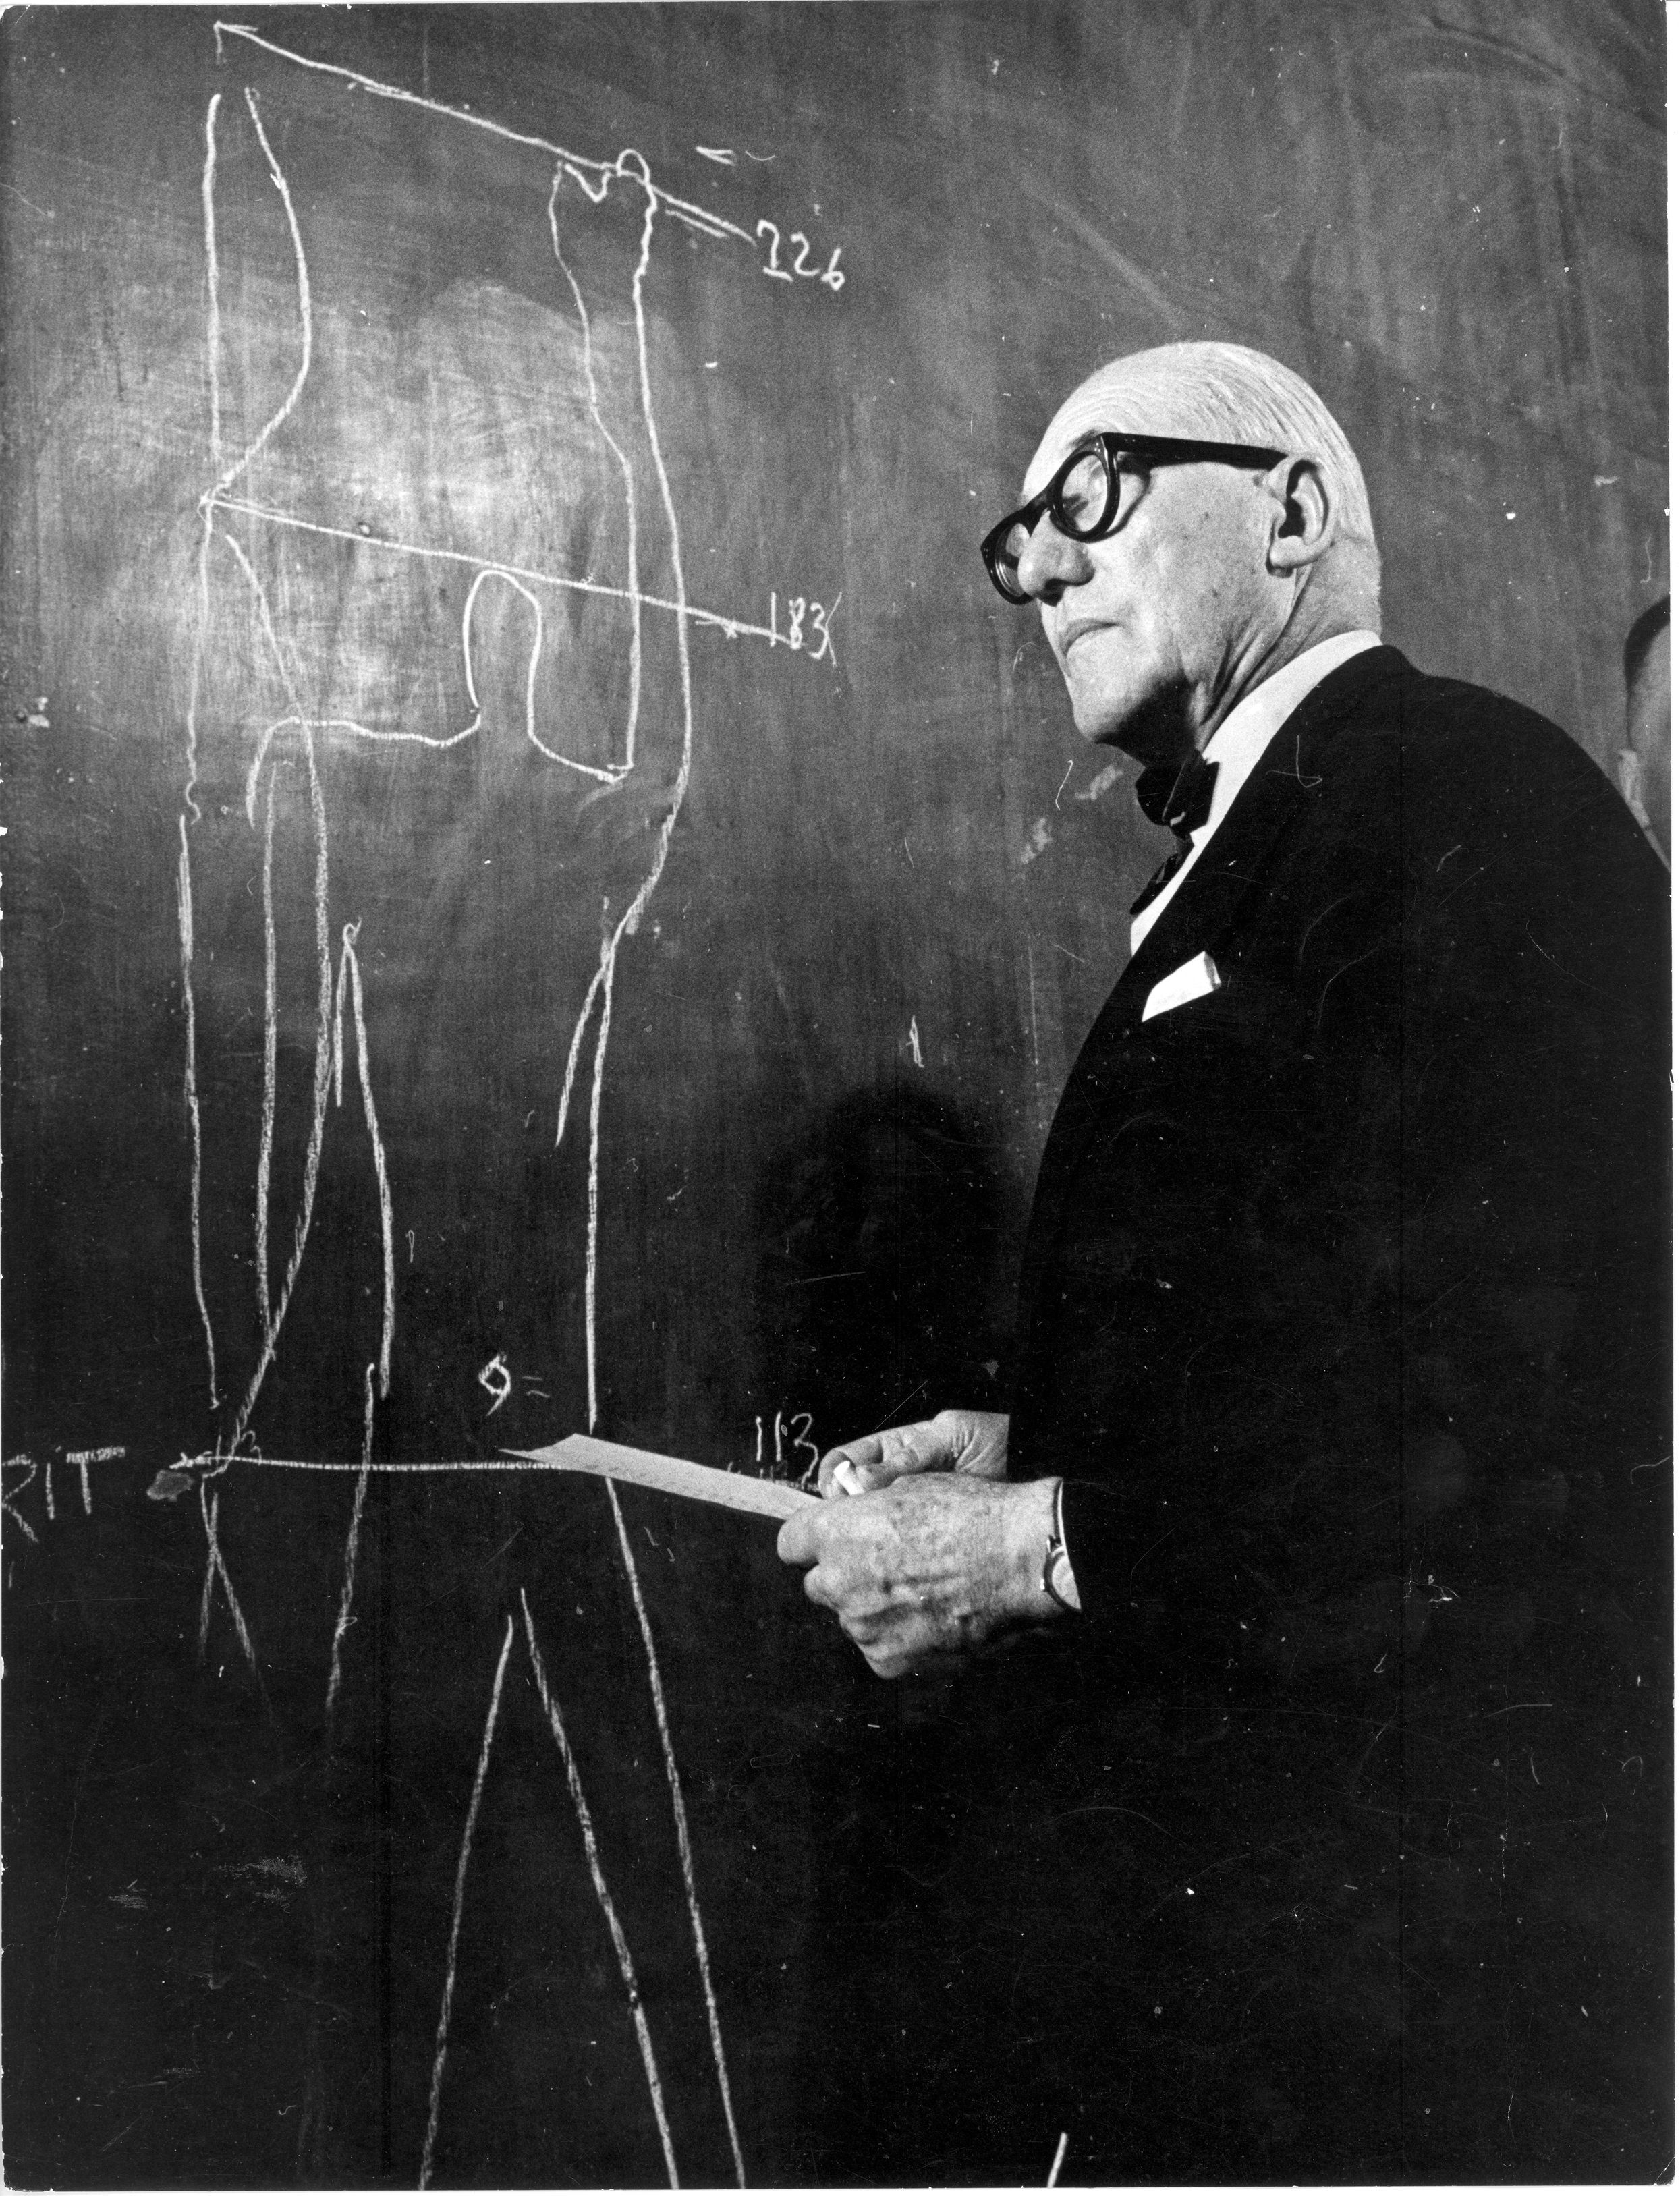 thumb_Copyright_FondationLeCorbusier_LeCorbusier_Modulor (1).jpg